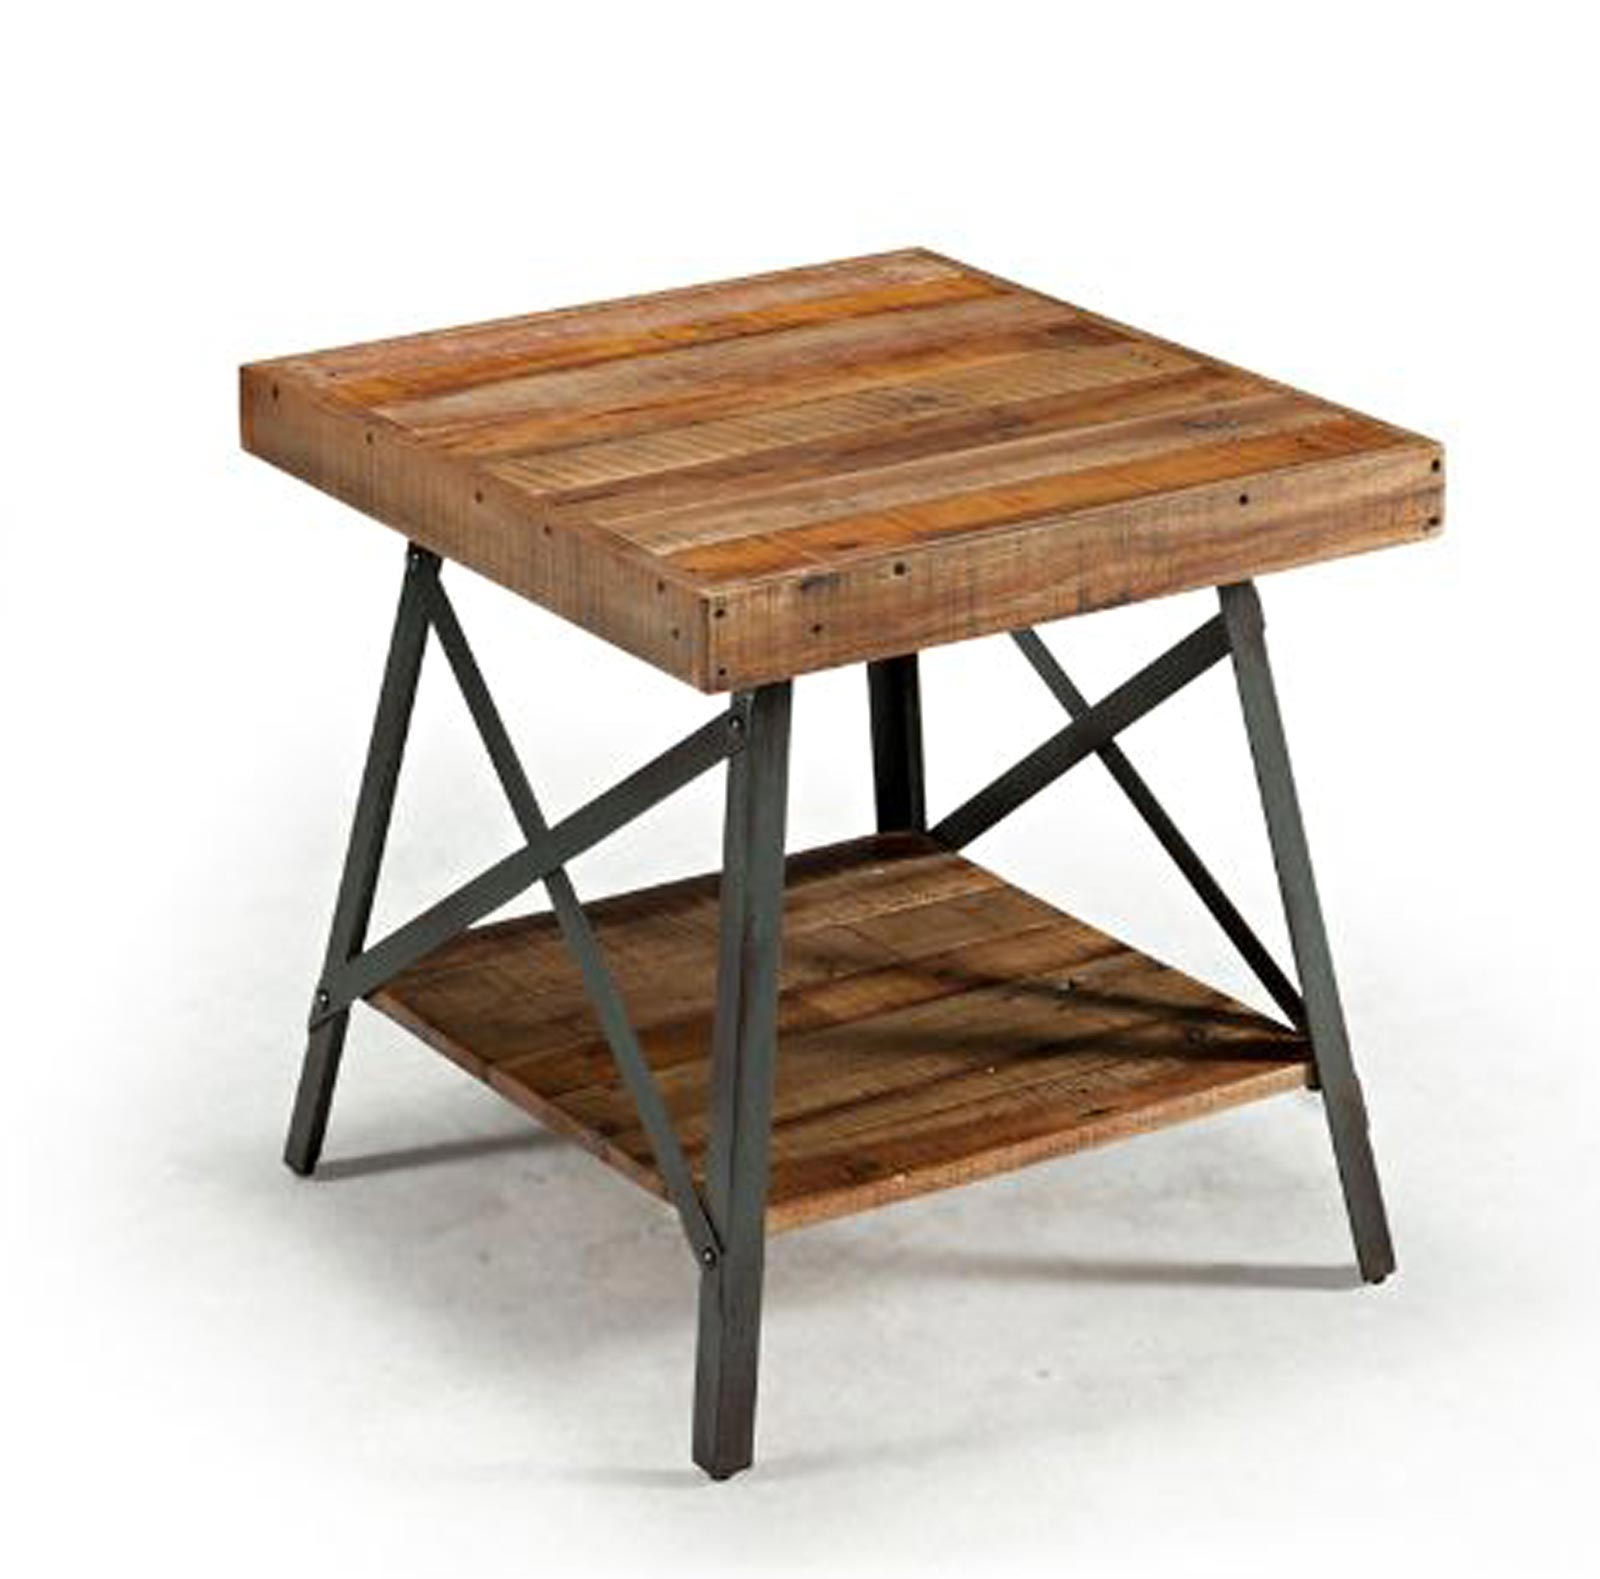 wood file cabinet the terrific awesome berwyn end table metal and tables home design ideas tures rustic side wooden reclaimed diy industrial iron accent plans dyi brown threshold